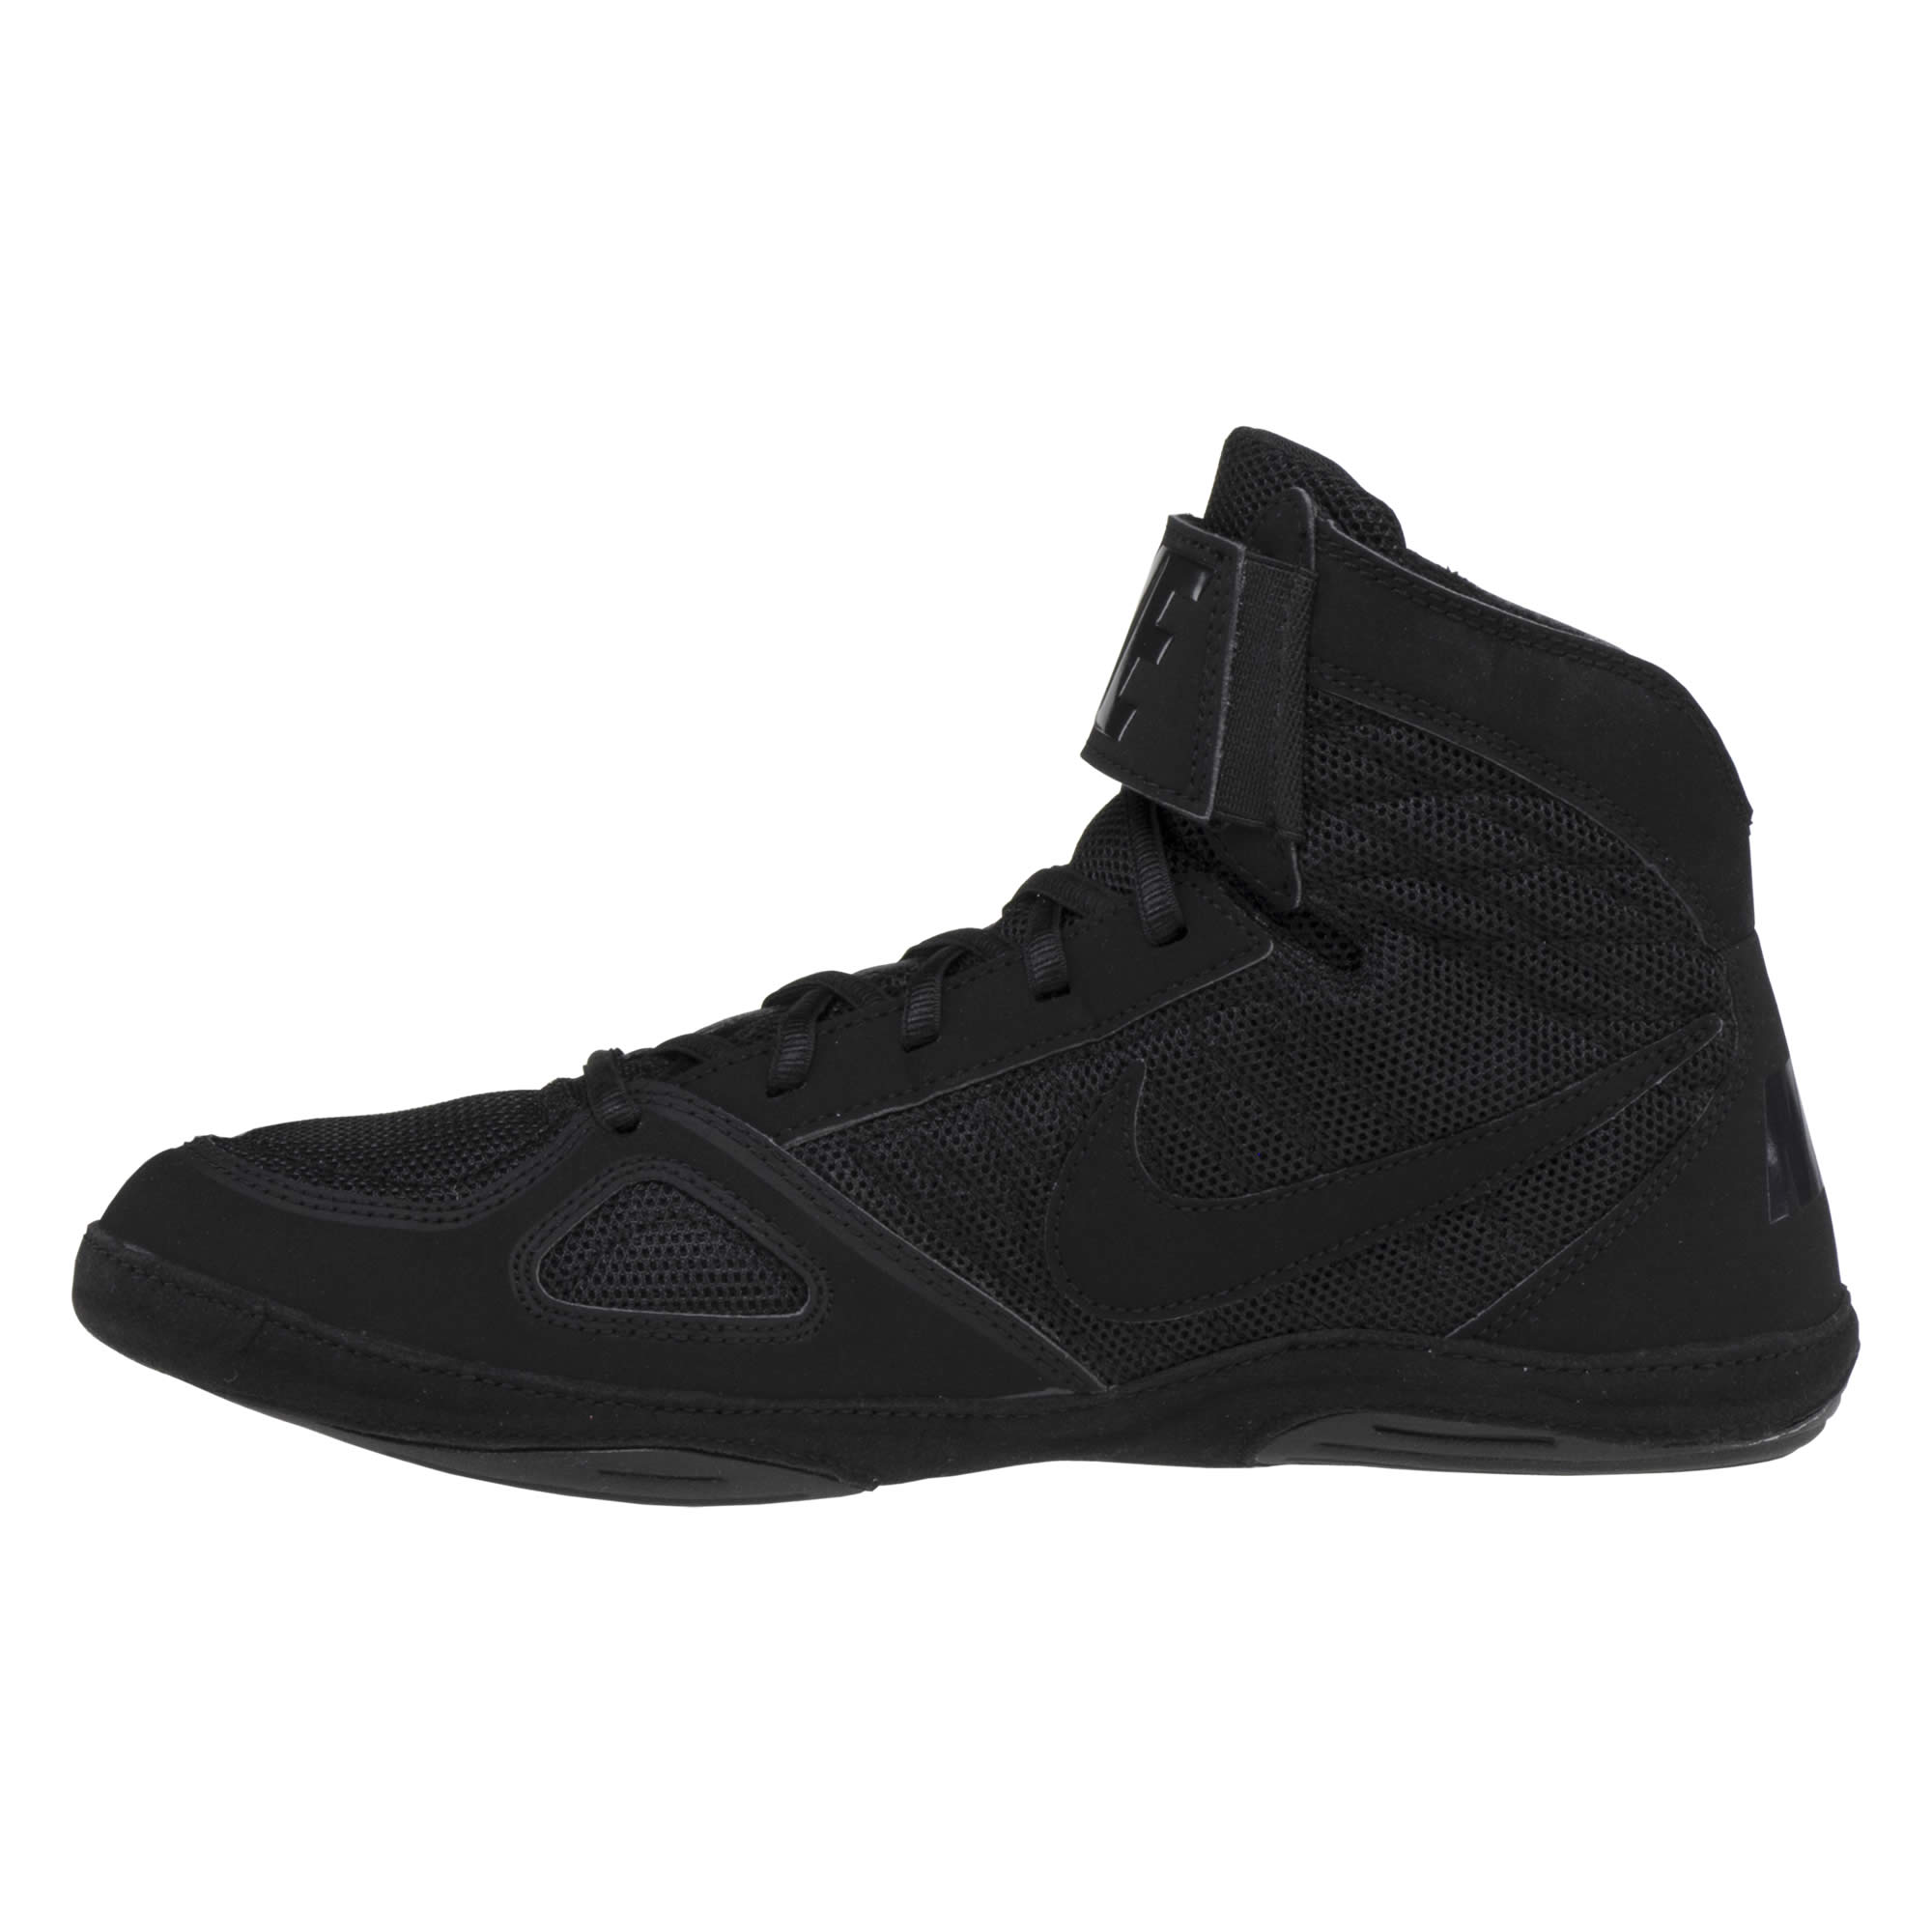 Nike Takedown 4 Shoes | WrestlingMart | Free Shipping